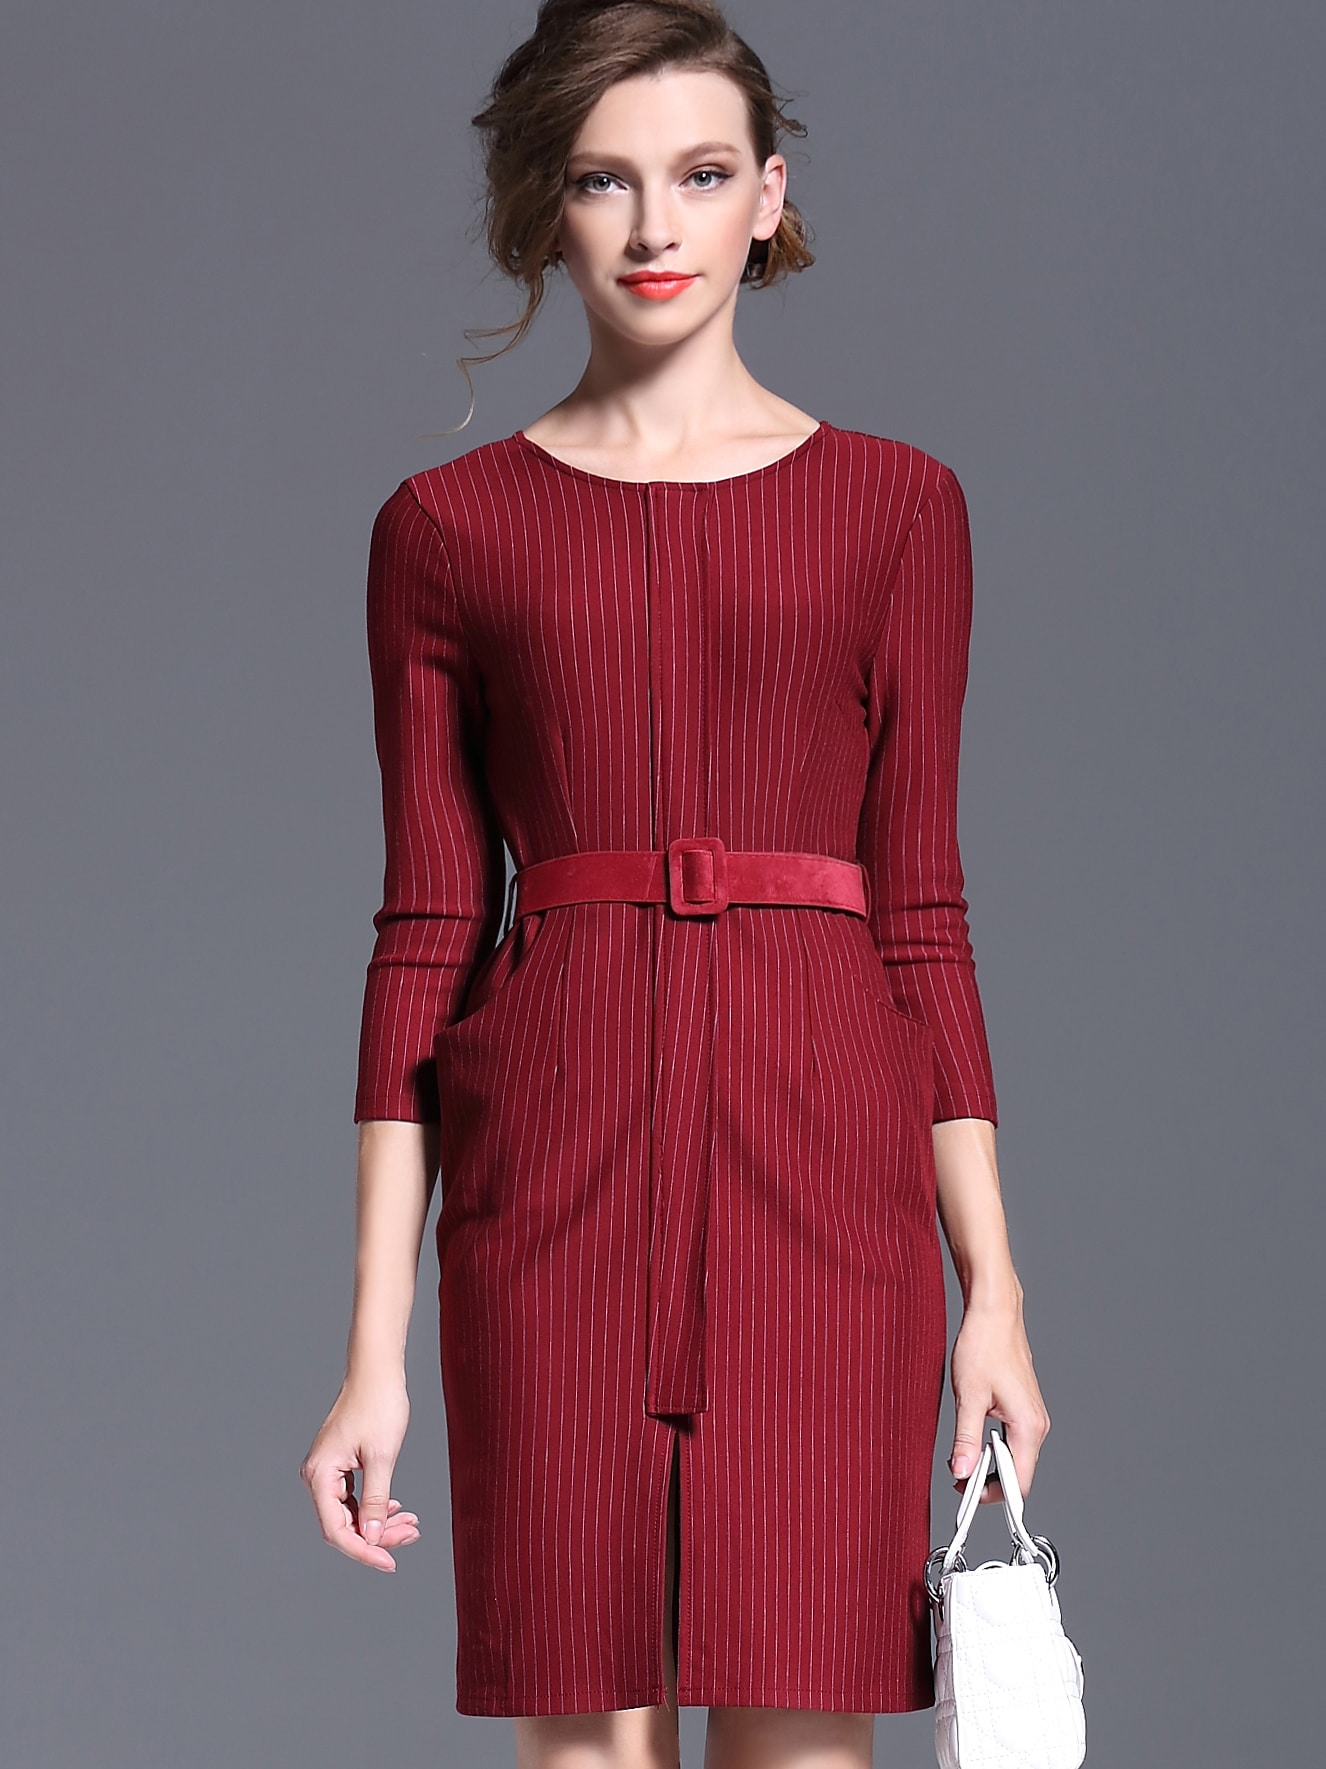 Red Round Neck Length Sleeve Drawstring Pockets Dress